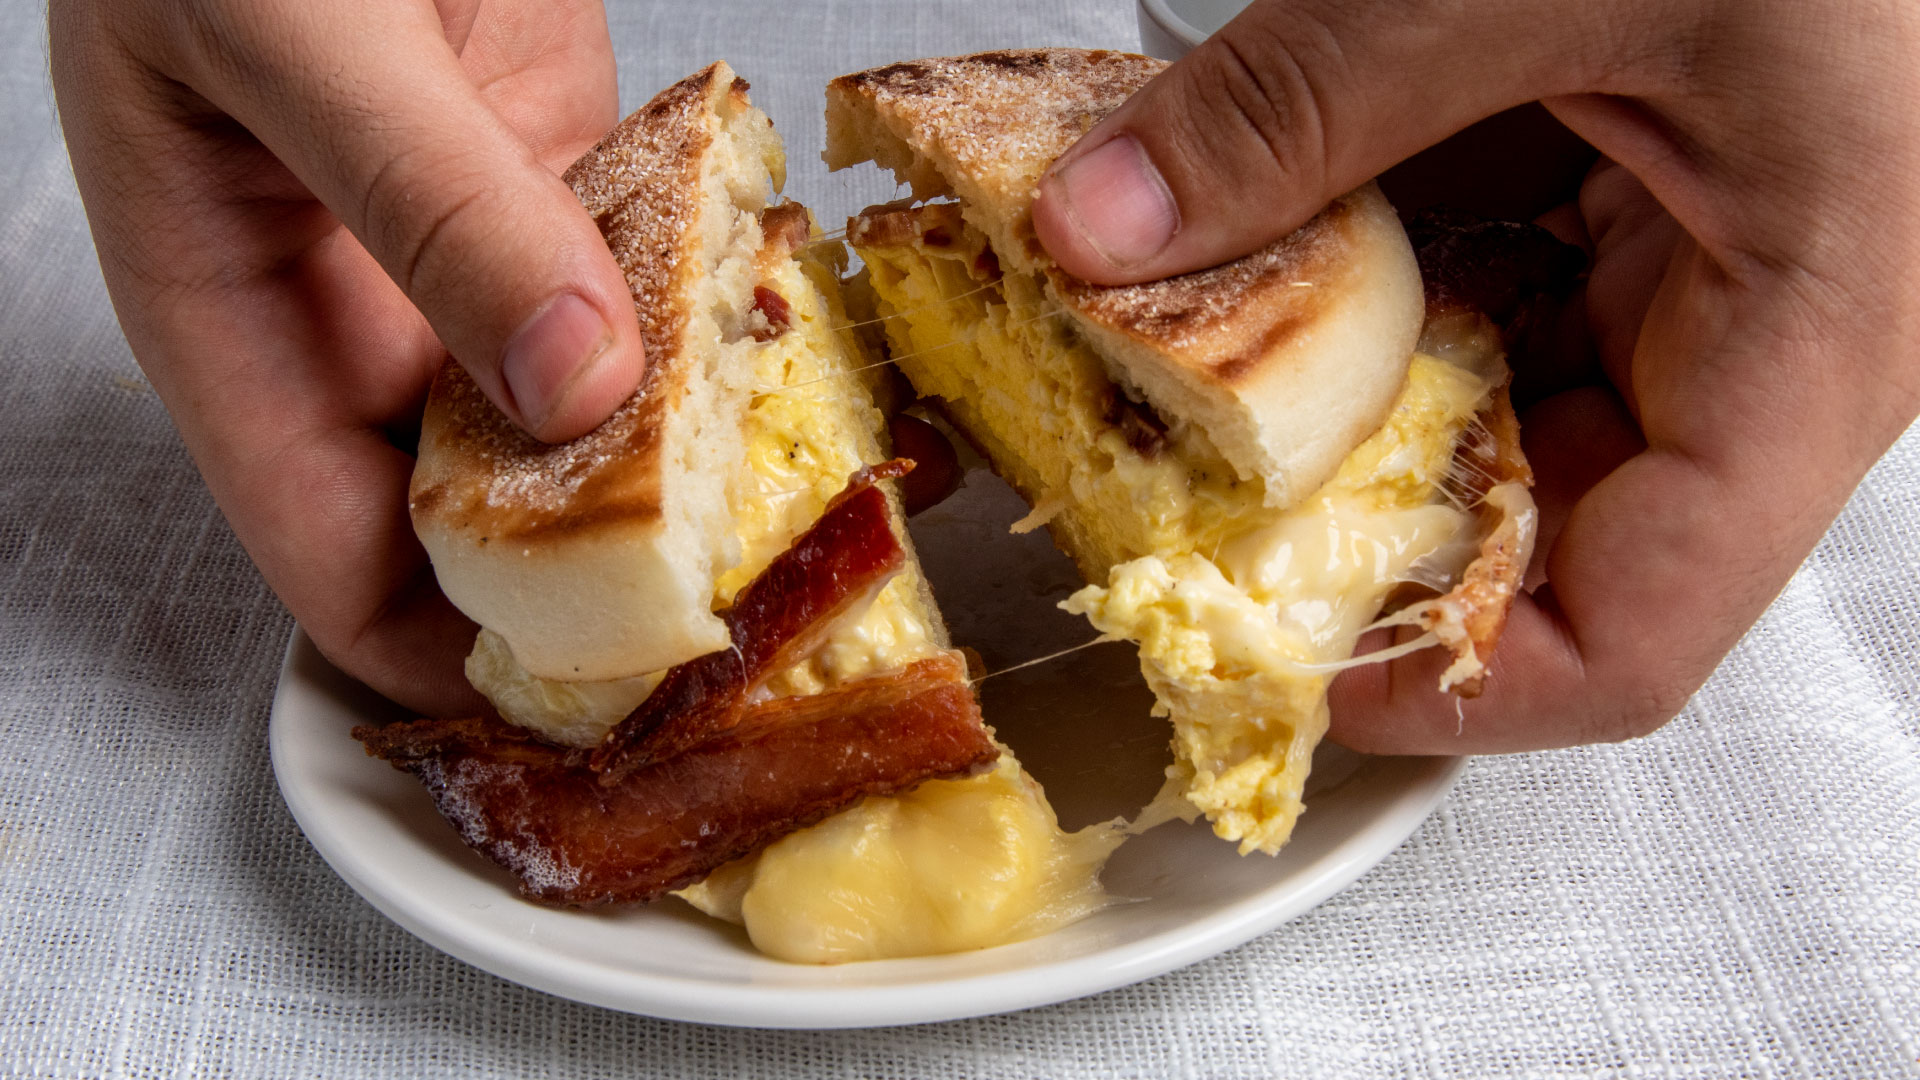 Murray's Ultimate Bacon, Egg & Cheese 2